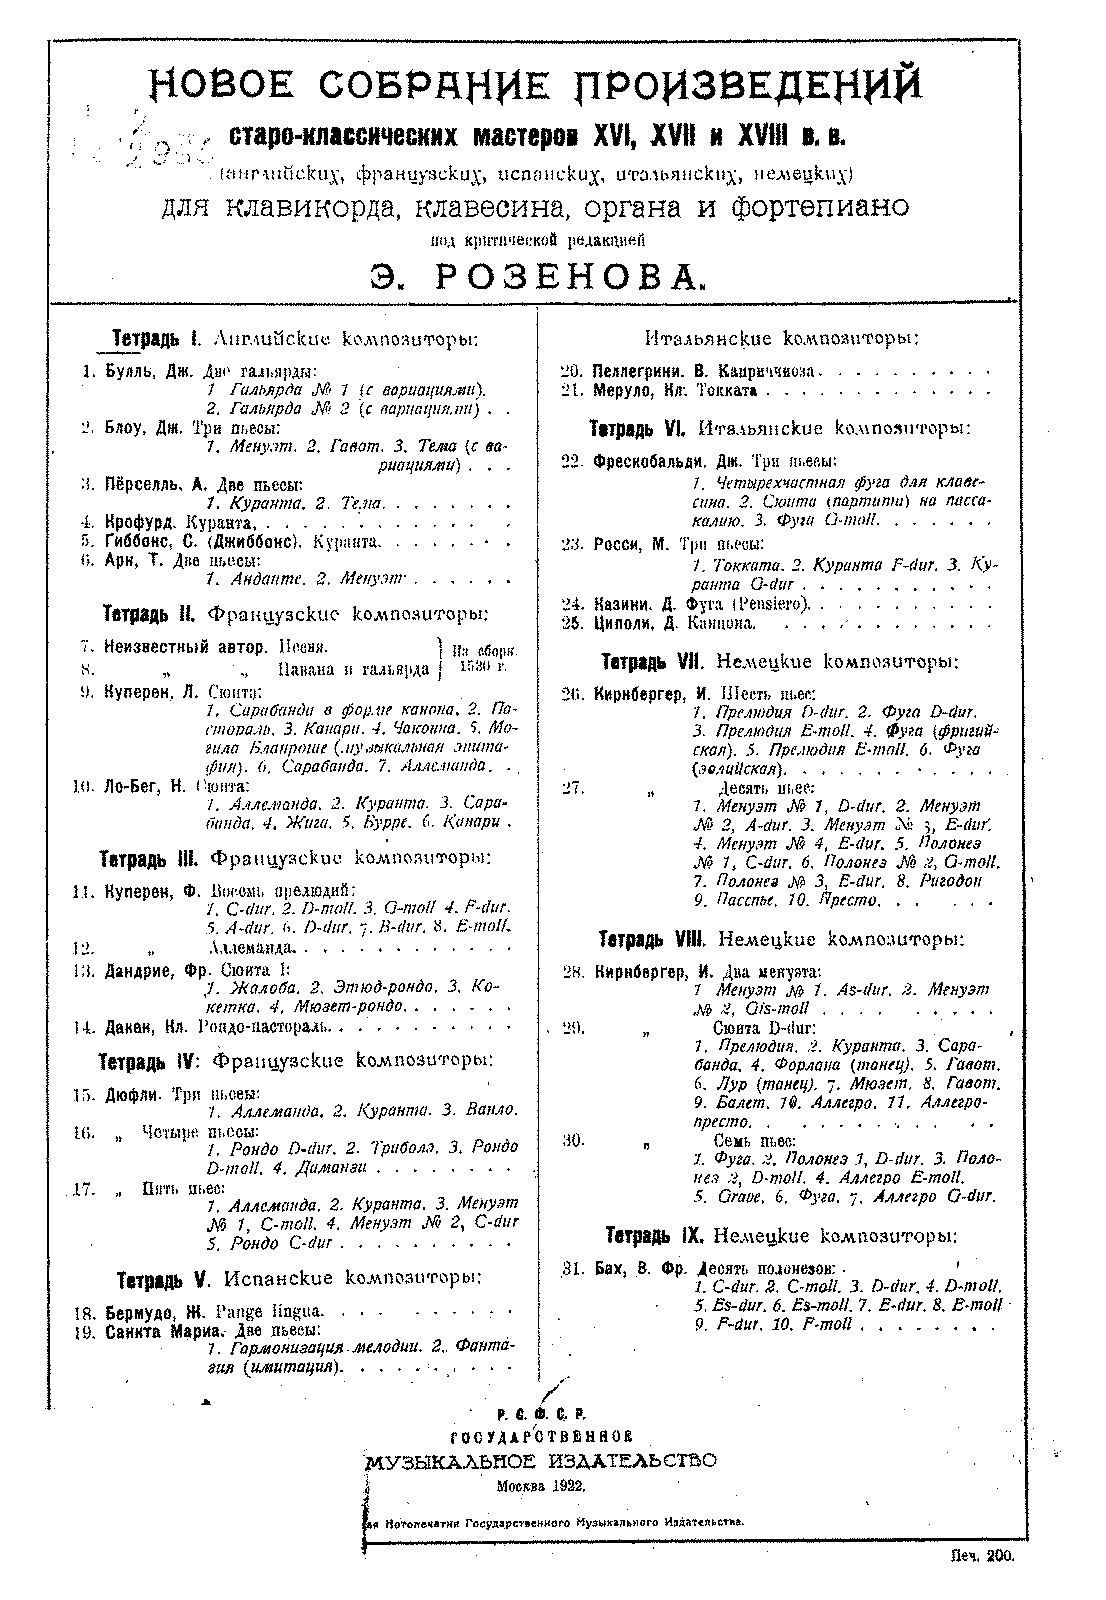 PMLP392363-rozenov Old Keyboard mMasters 9 vol 31 pc 1922.pdf